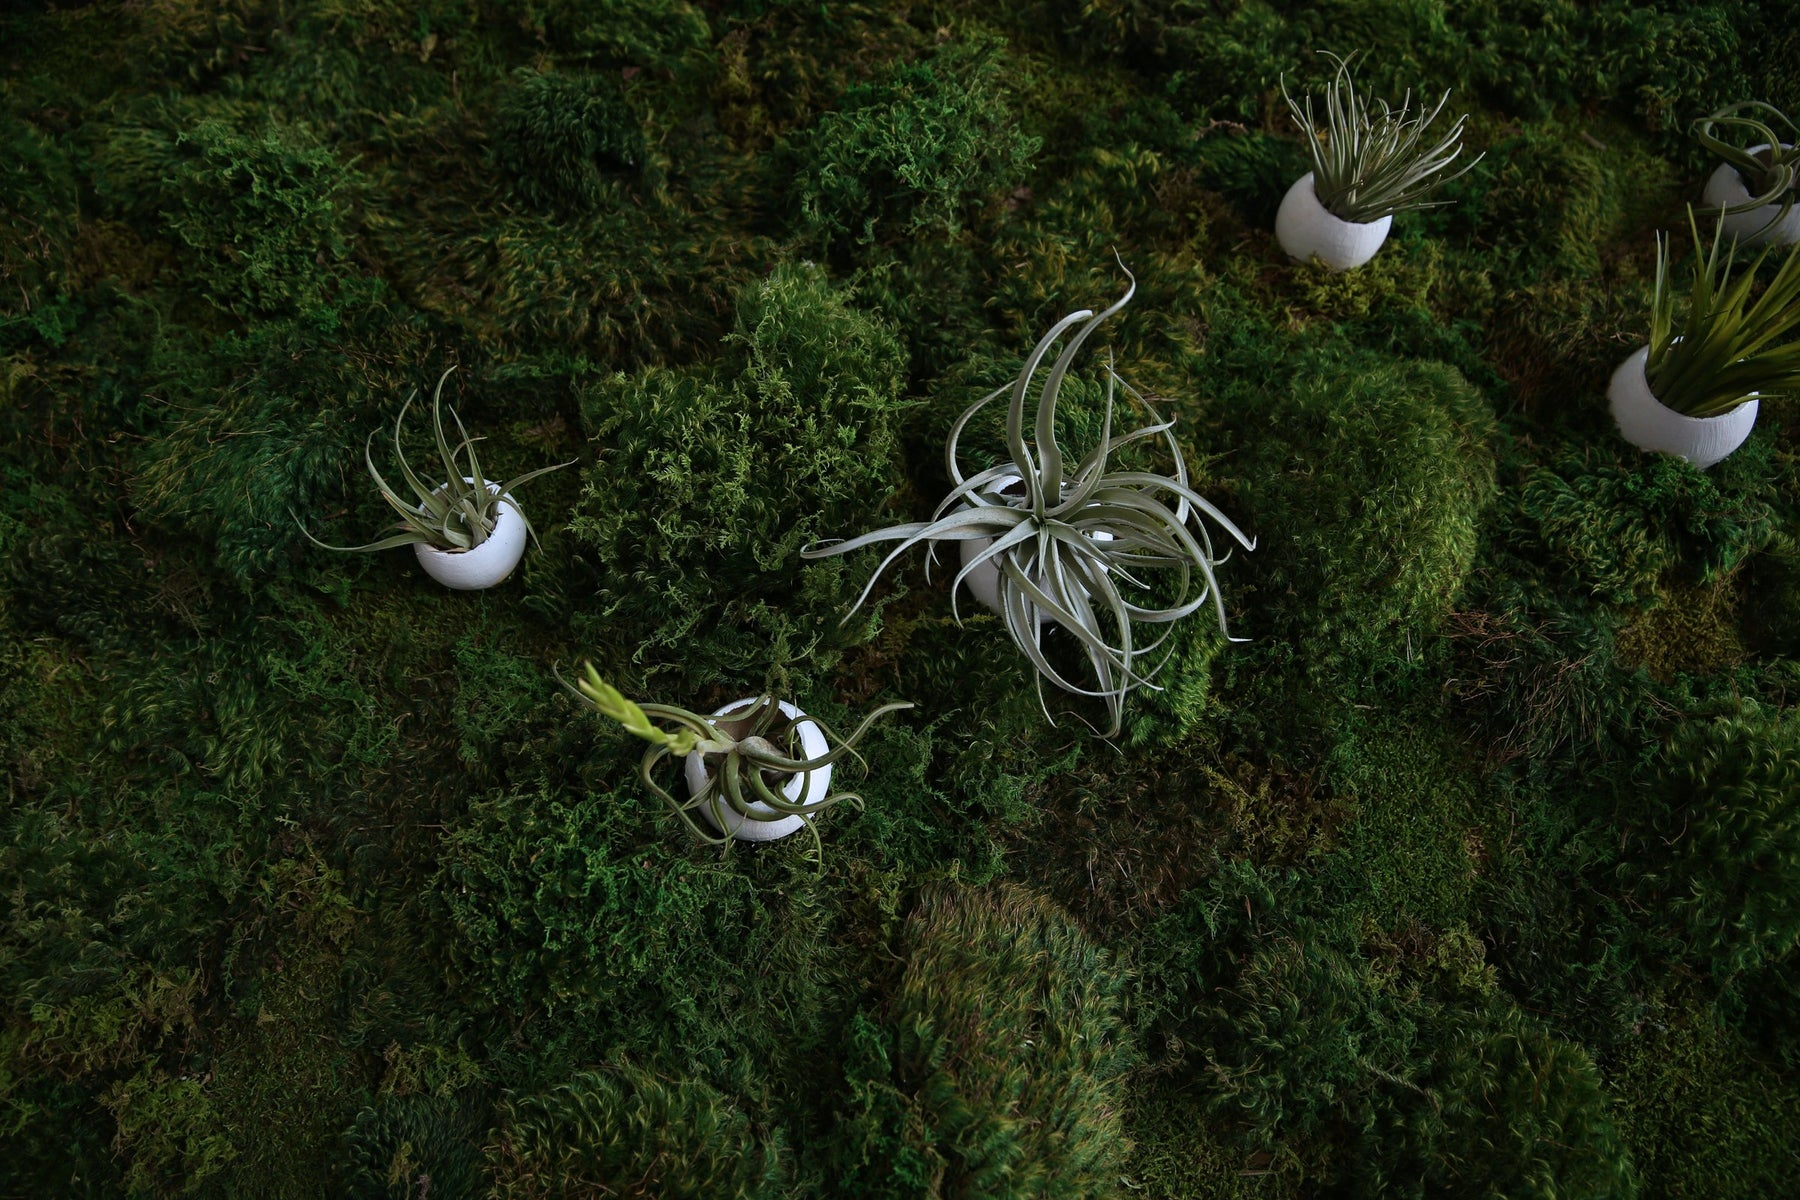 Close up view of kelley's moss art